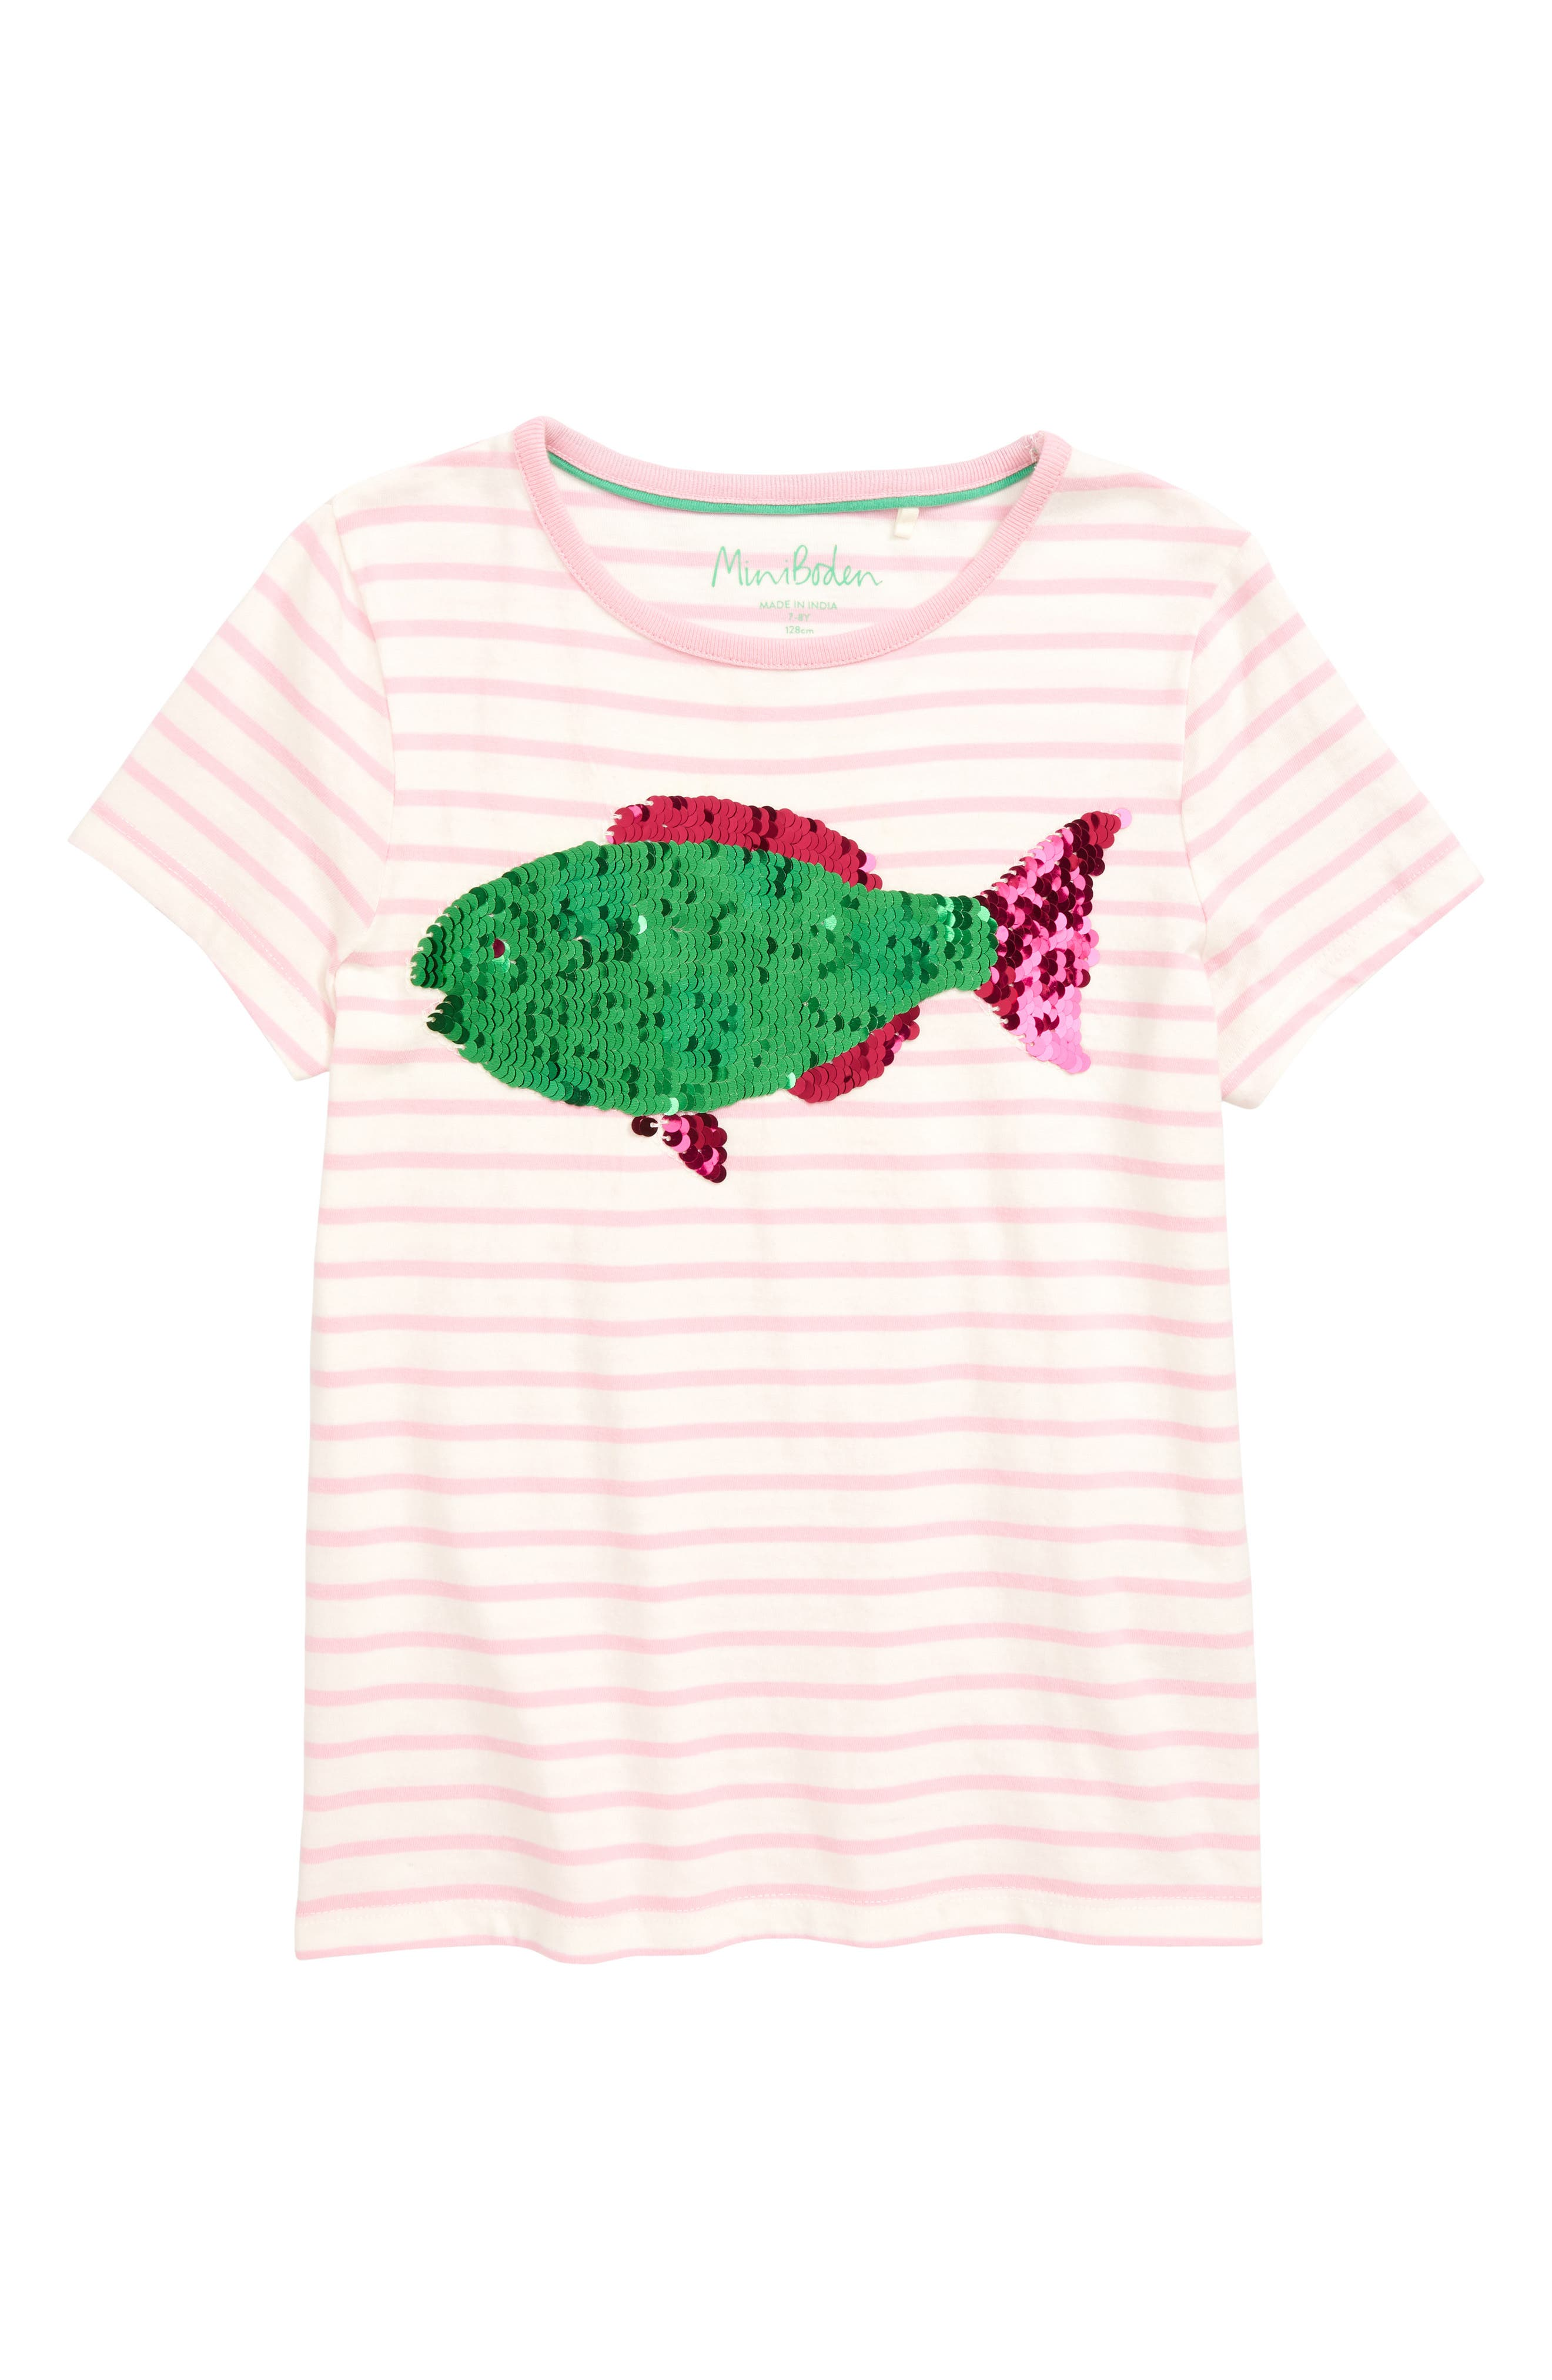 Sunny Color Change Tee,                         Main,                         color, Ivory/ Rosebud Pink Fish